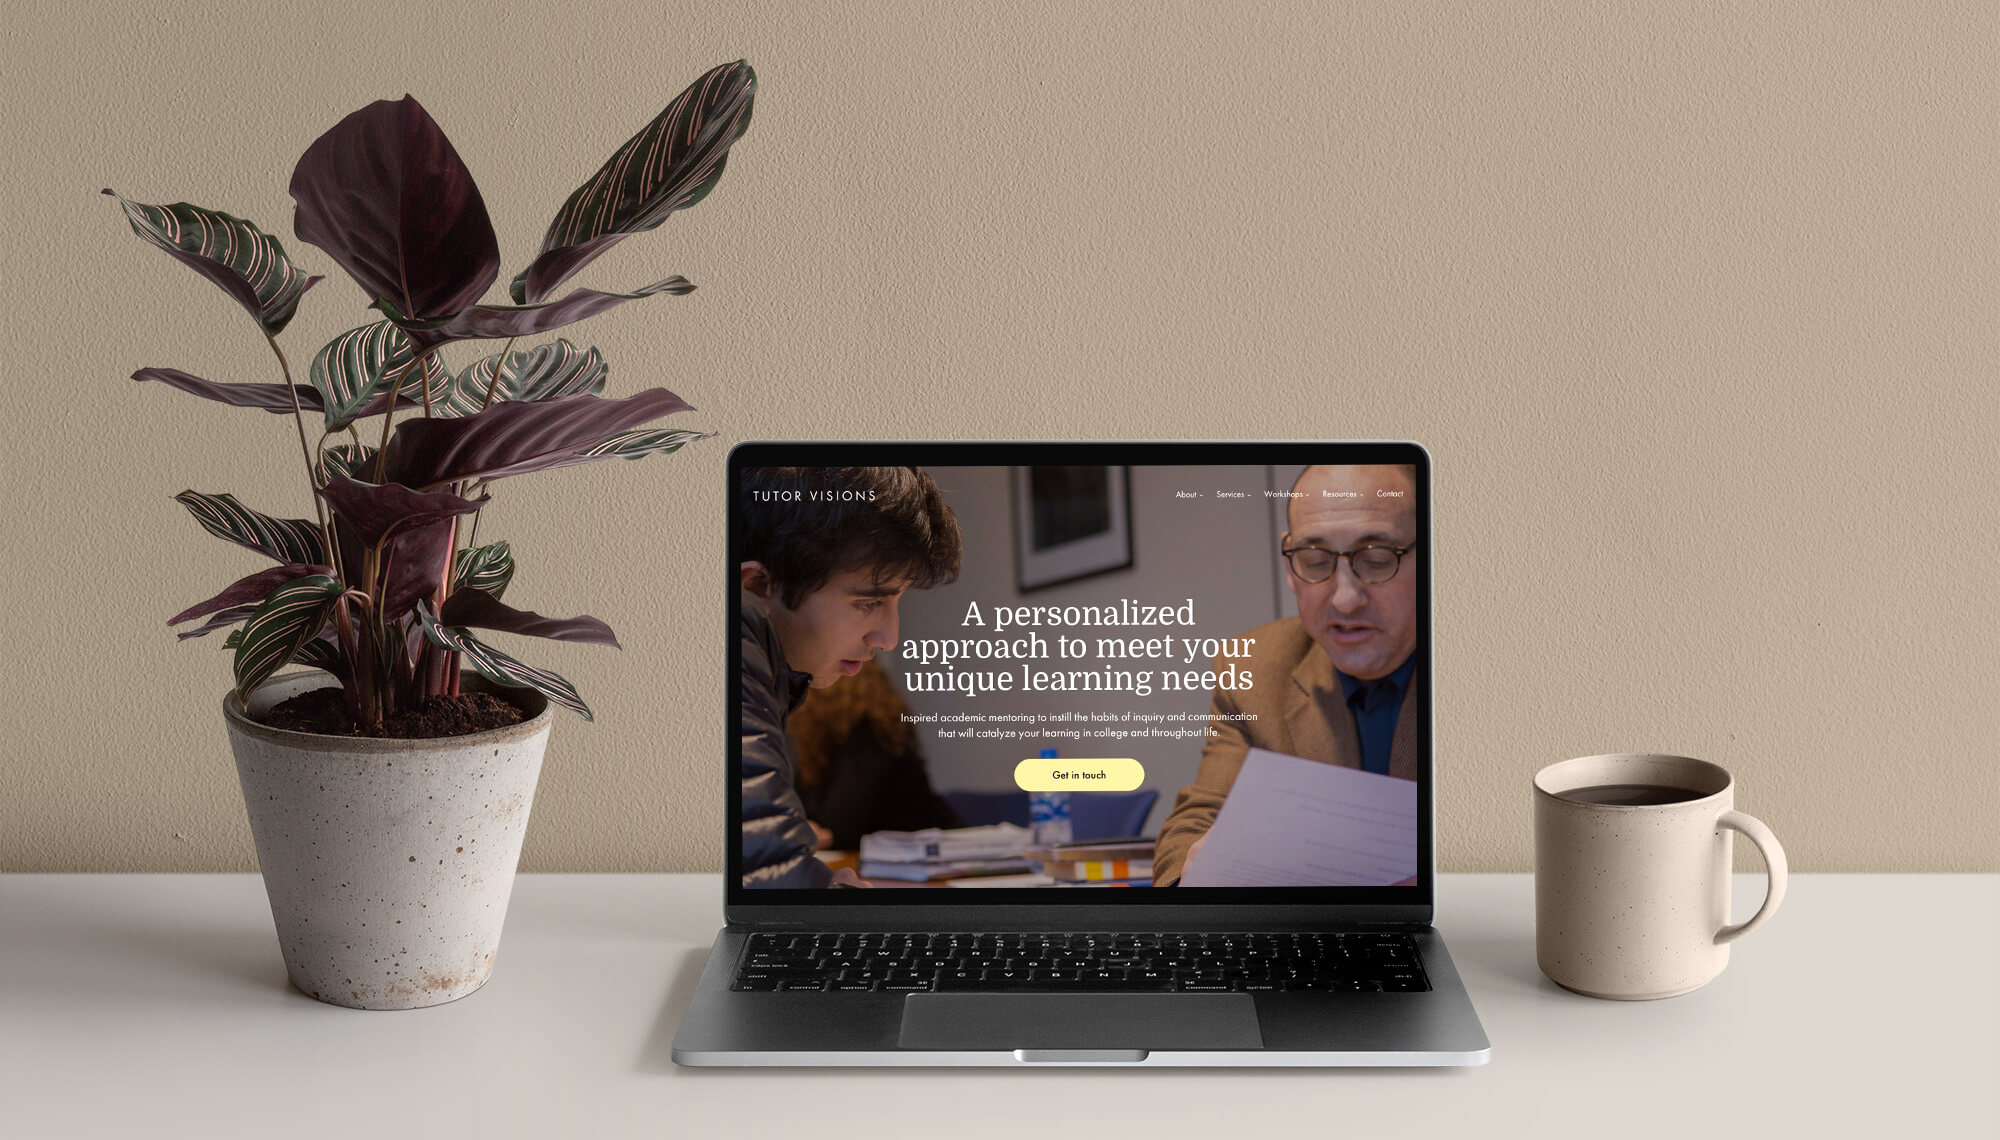 Tutor Visions Website Design and Development